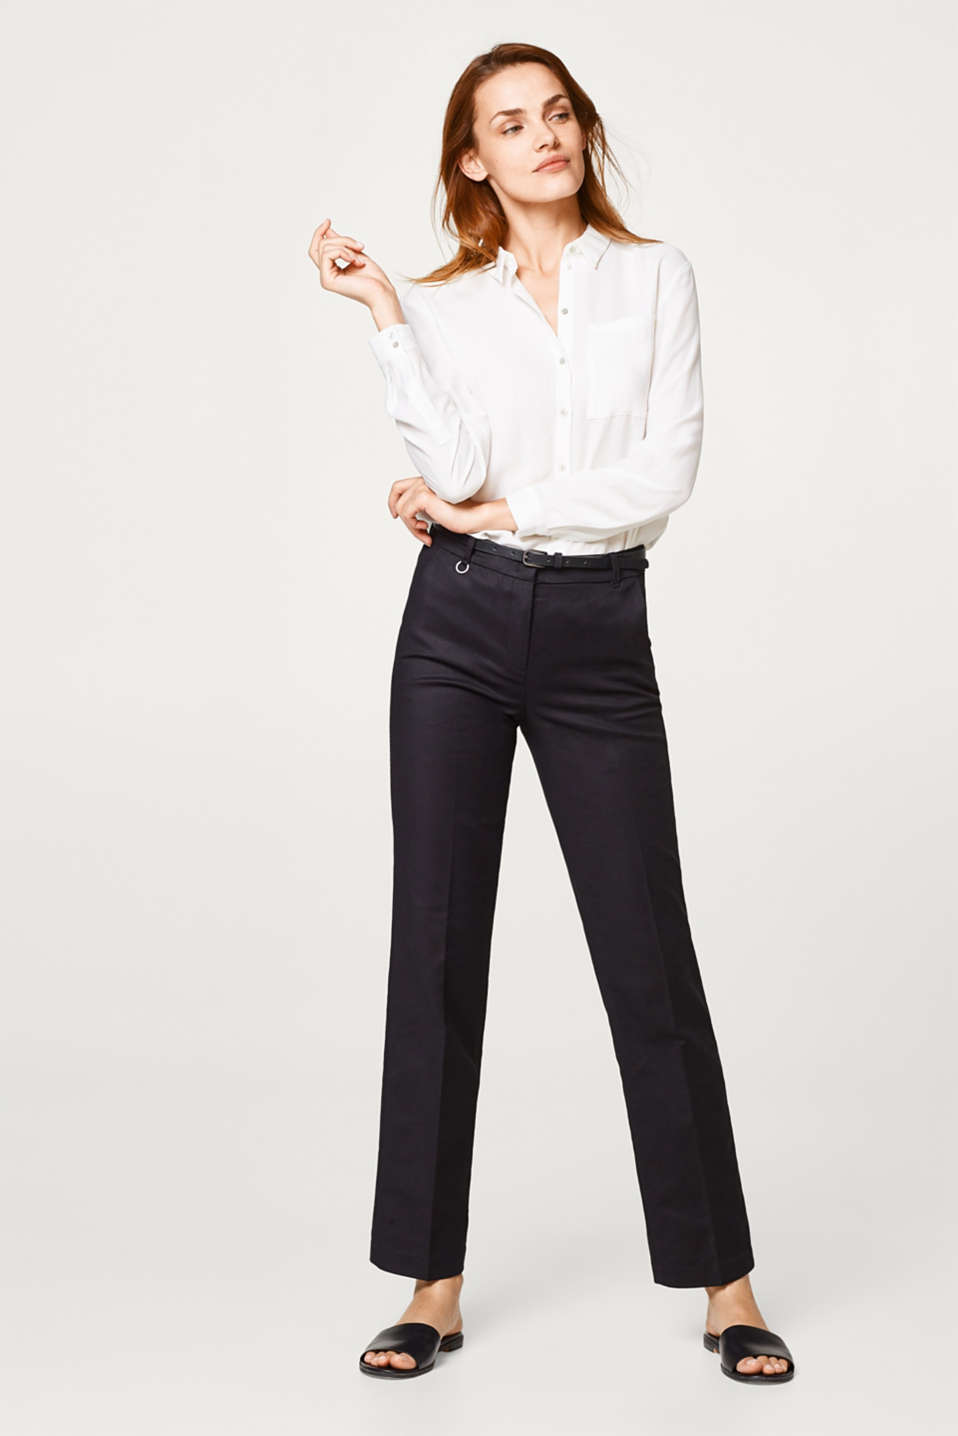 Trousers in firm stretch satin, with a belt